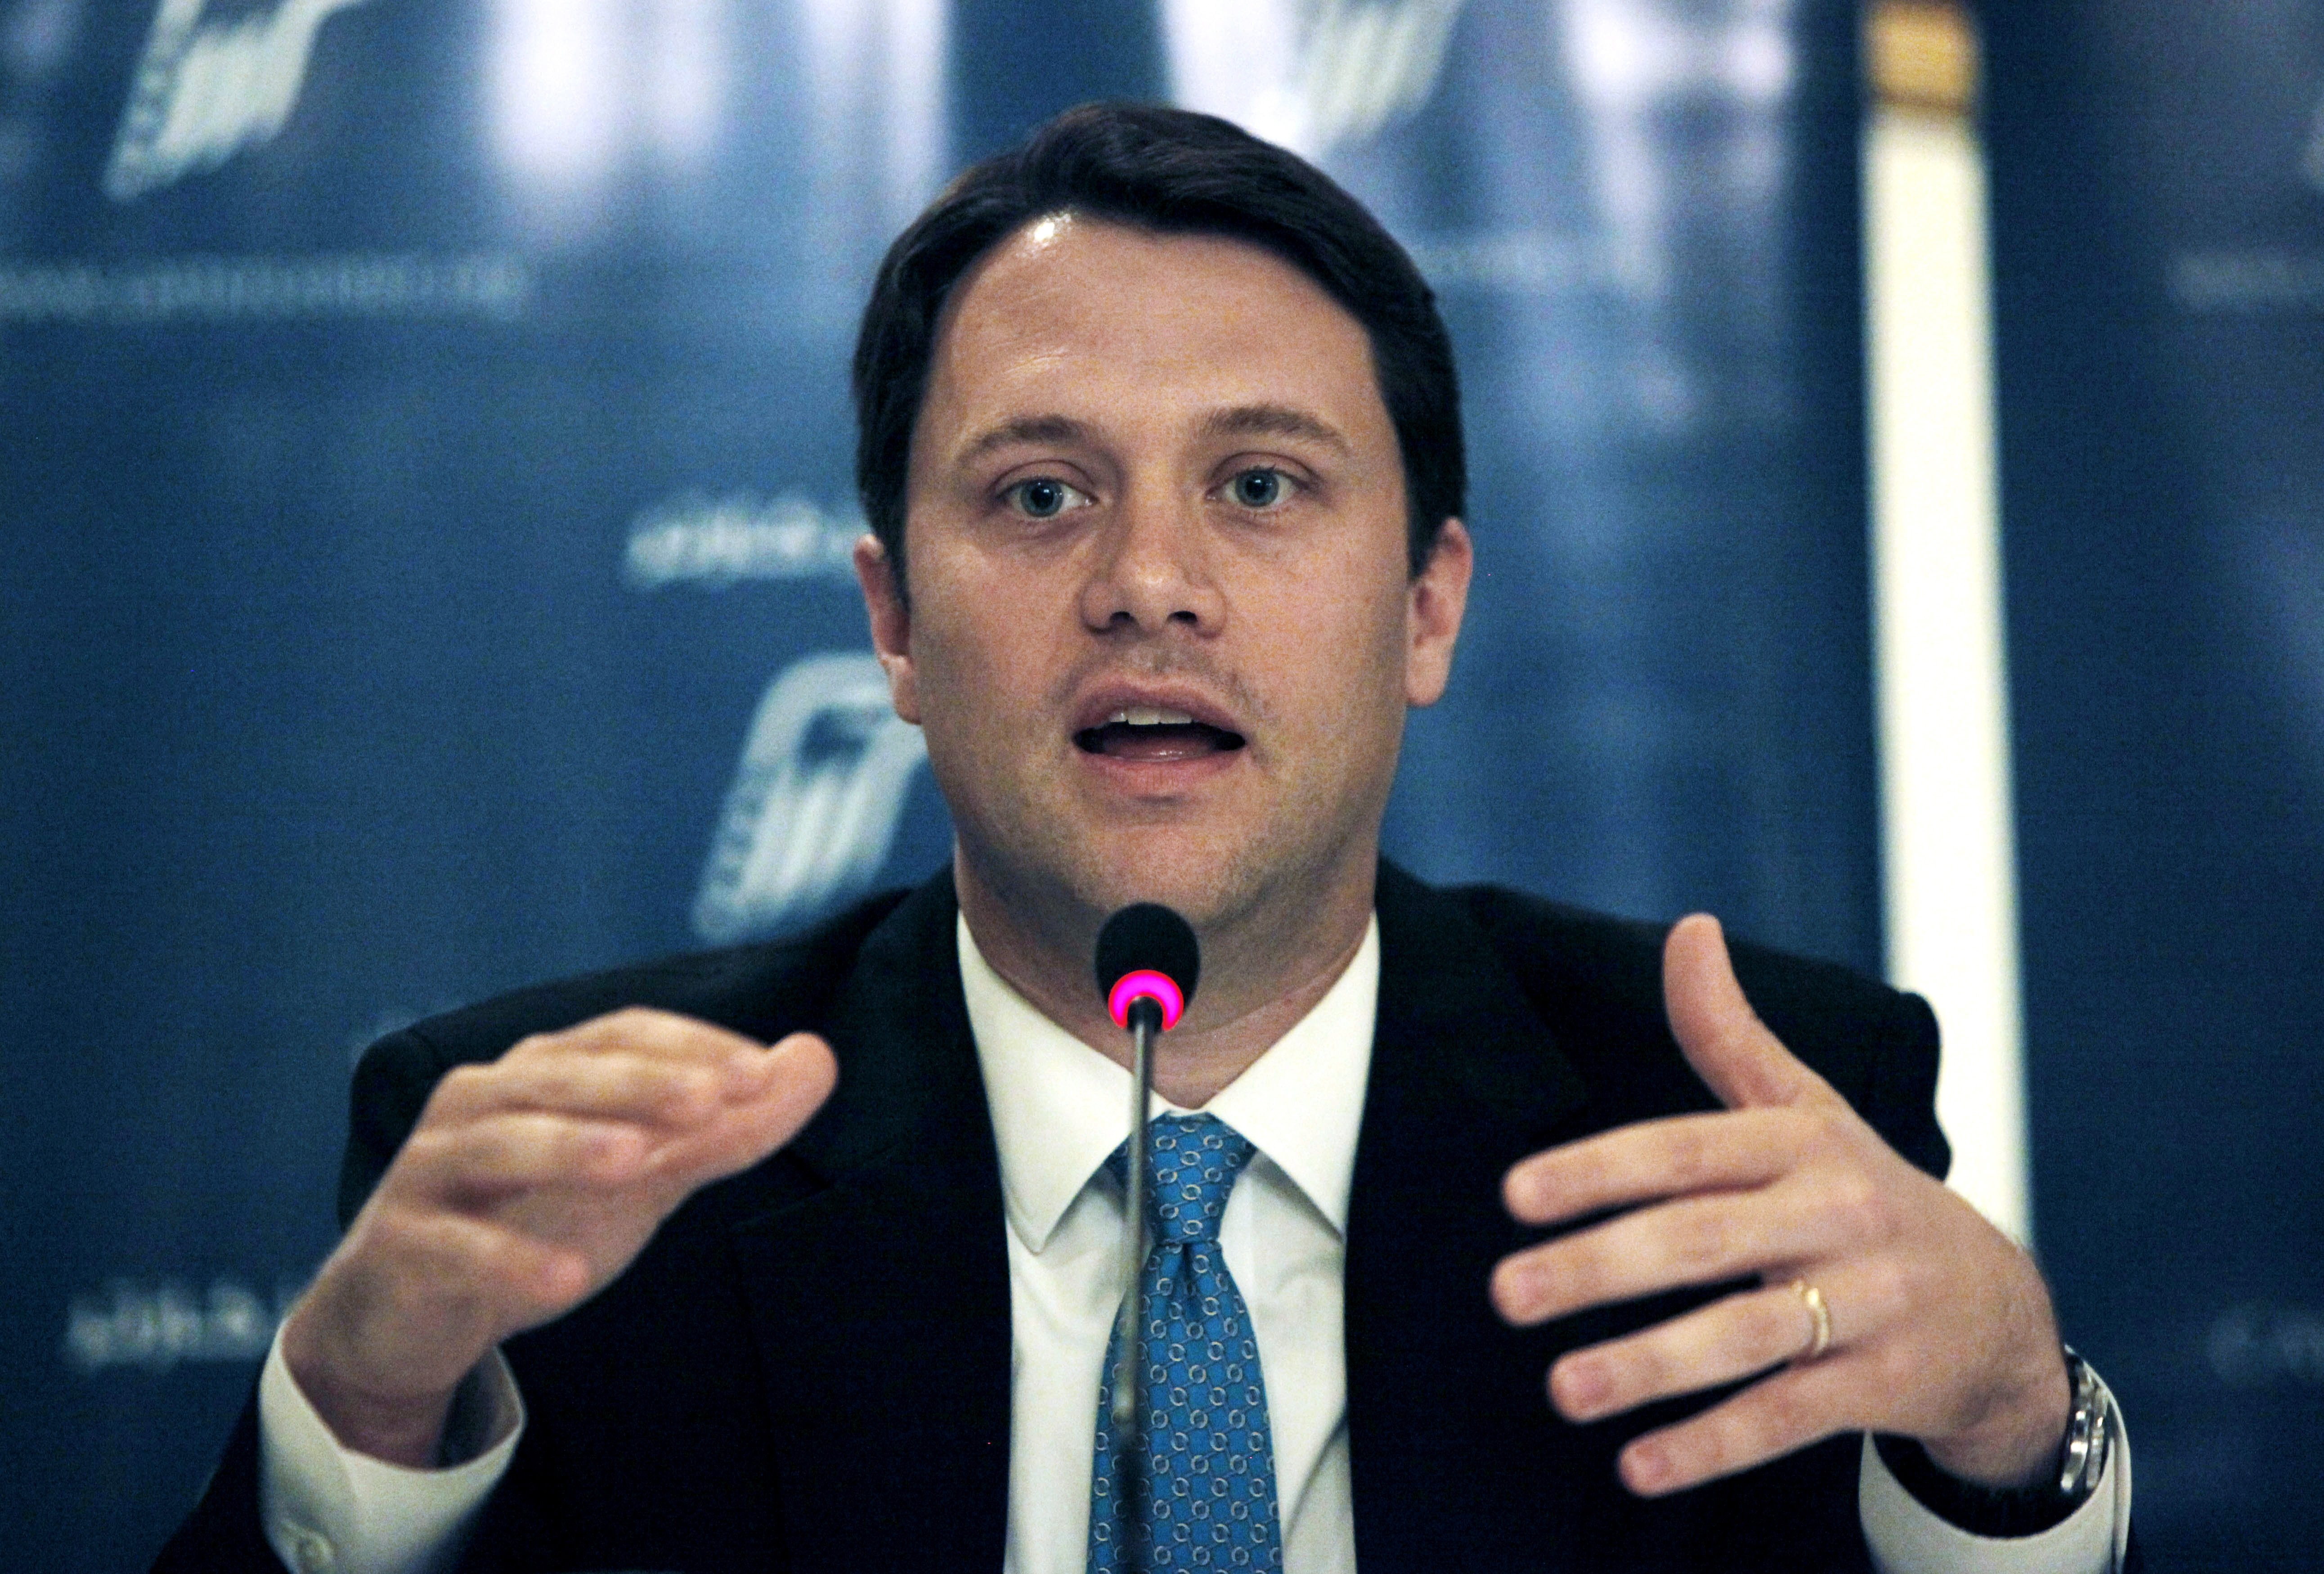 State Sen. Jason Carter calls himself a fiscal conservative. He'll face a well-financed incumbent in Gov. Nathan Deal.